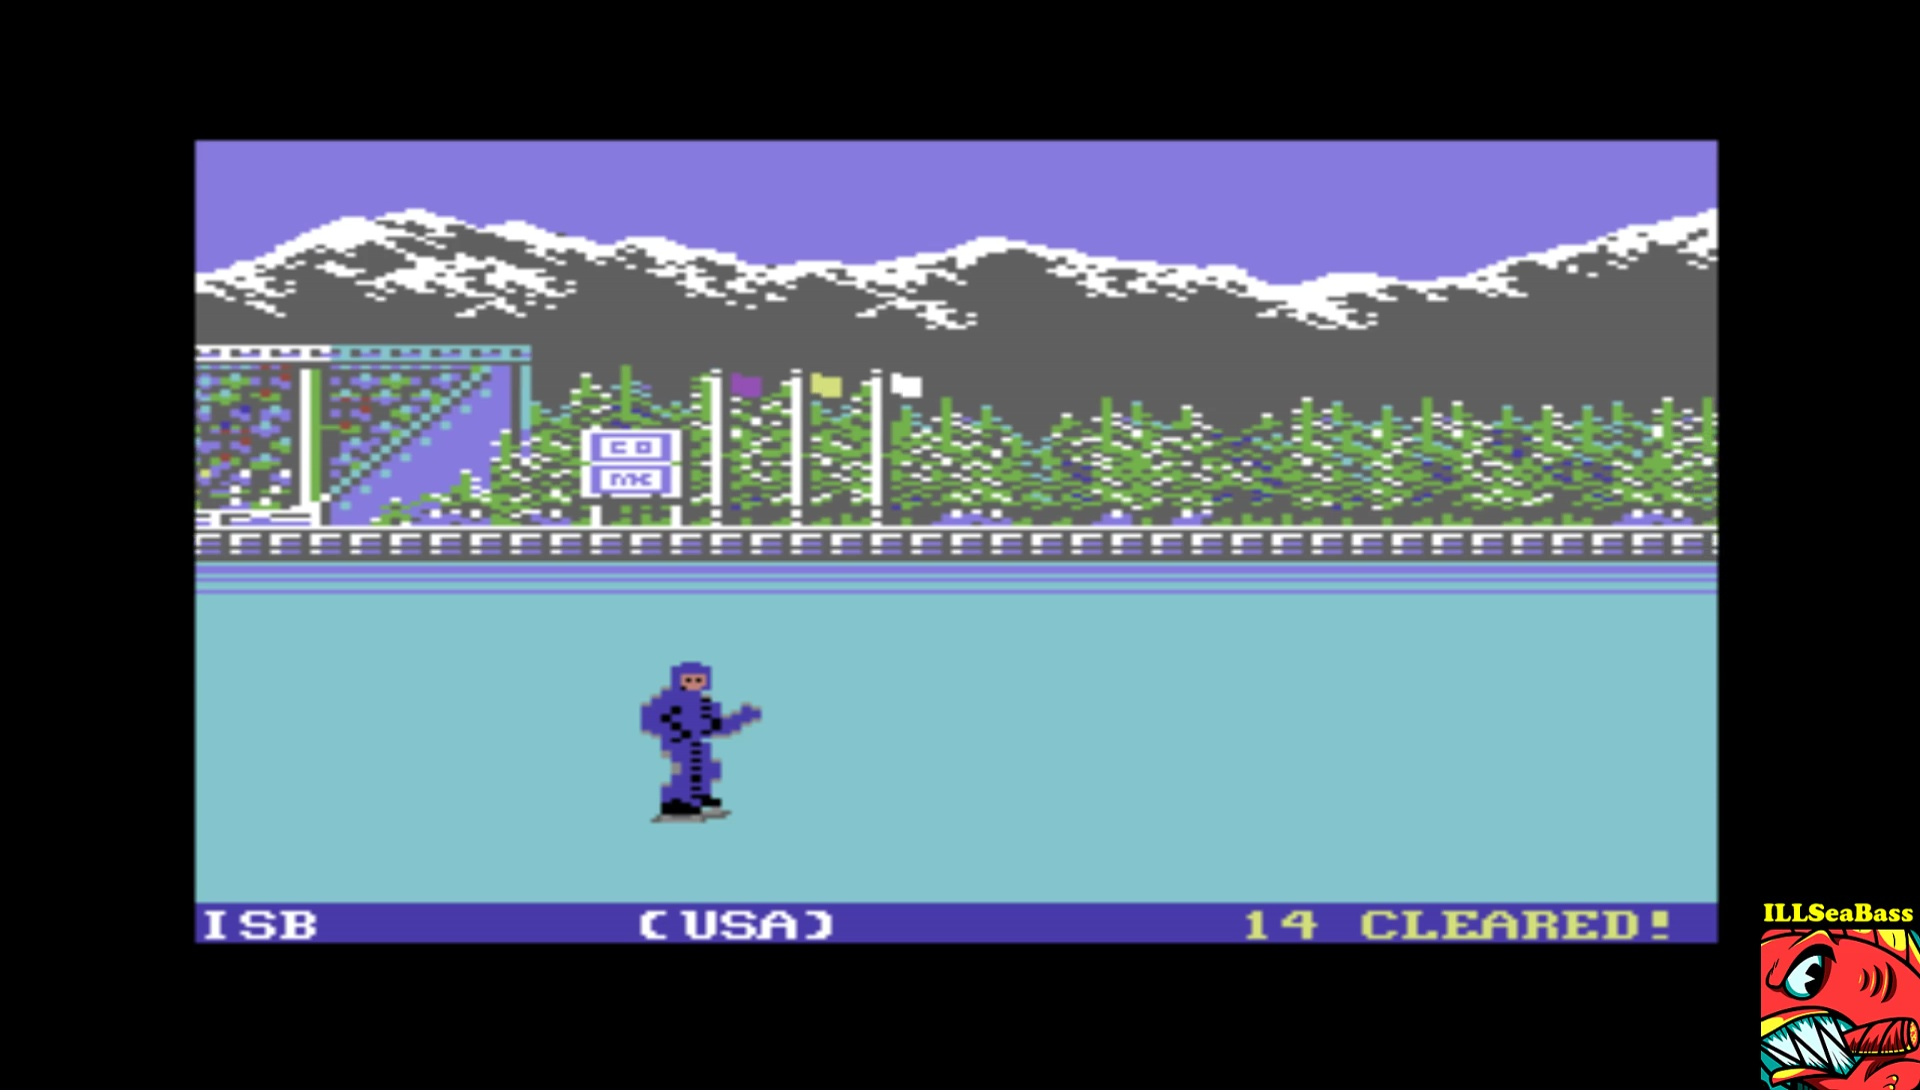 ILLSeaBass: World Games: Barrel Jumping [Barrels cleared.] (Commodore 64 Emulated) 14 points on 2017-03-16 00:12:43